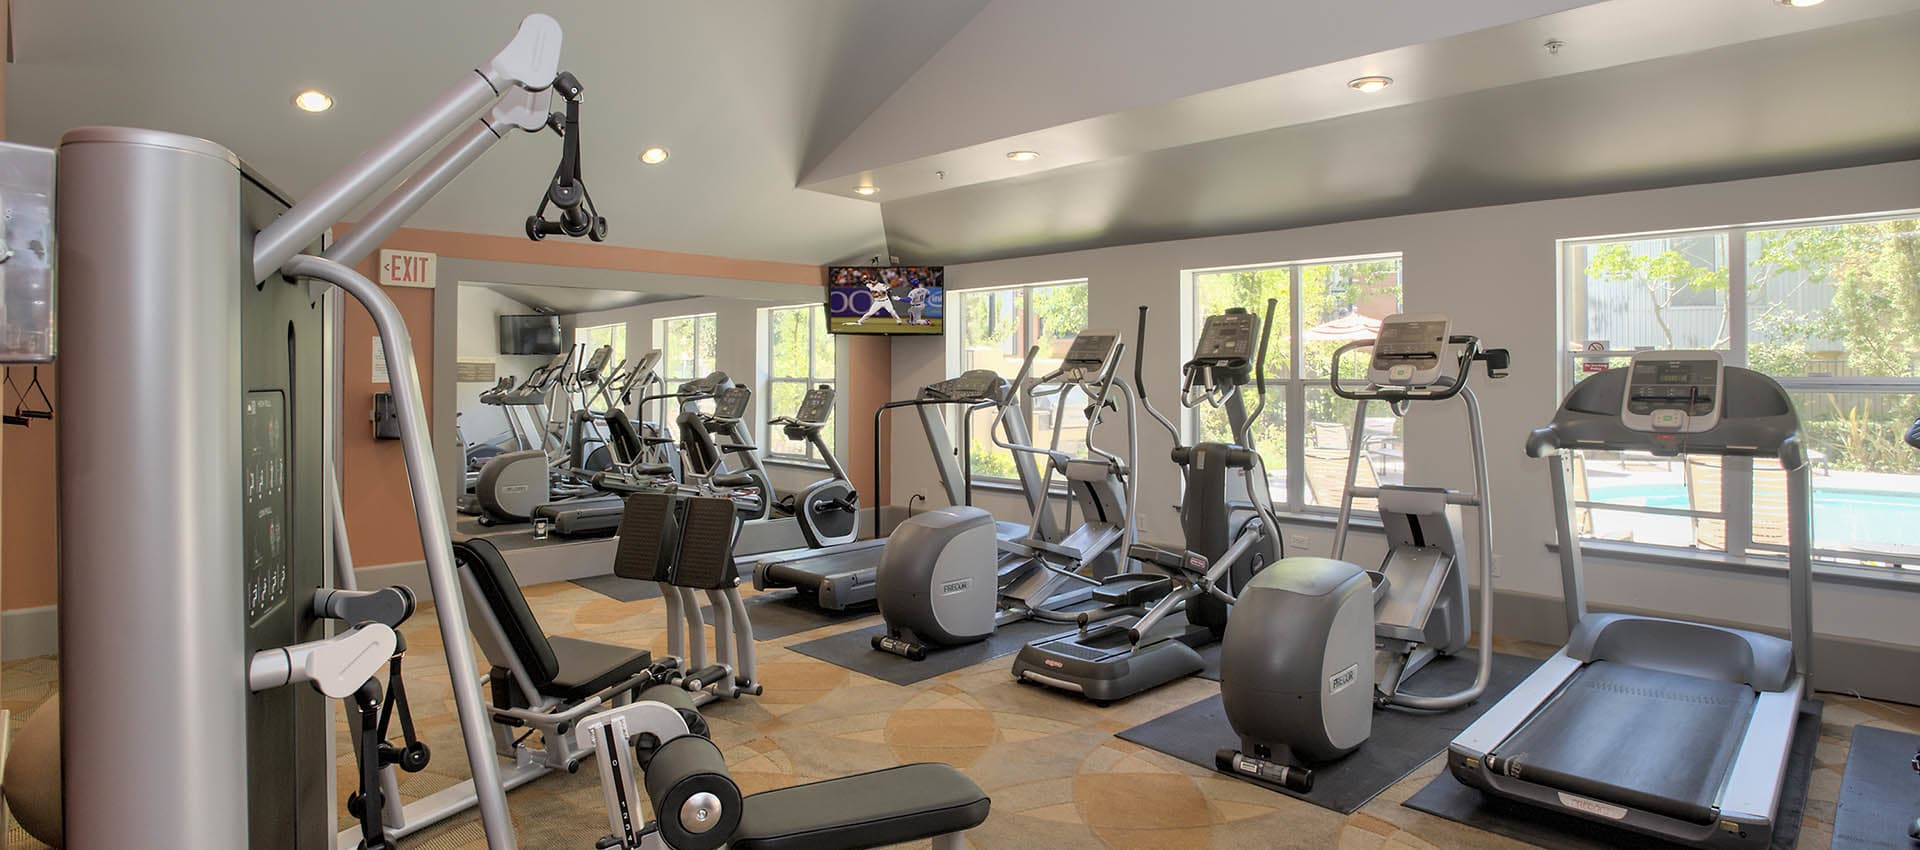 Well Equipped Fitness Center at Azure Apartment Homes in Petaluma, CA